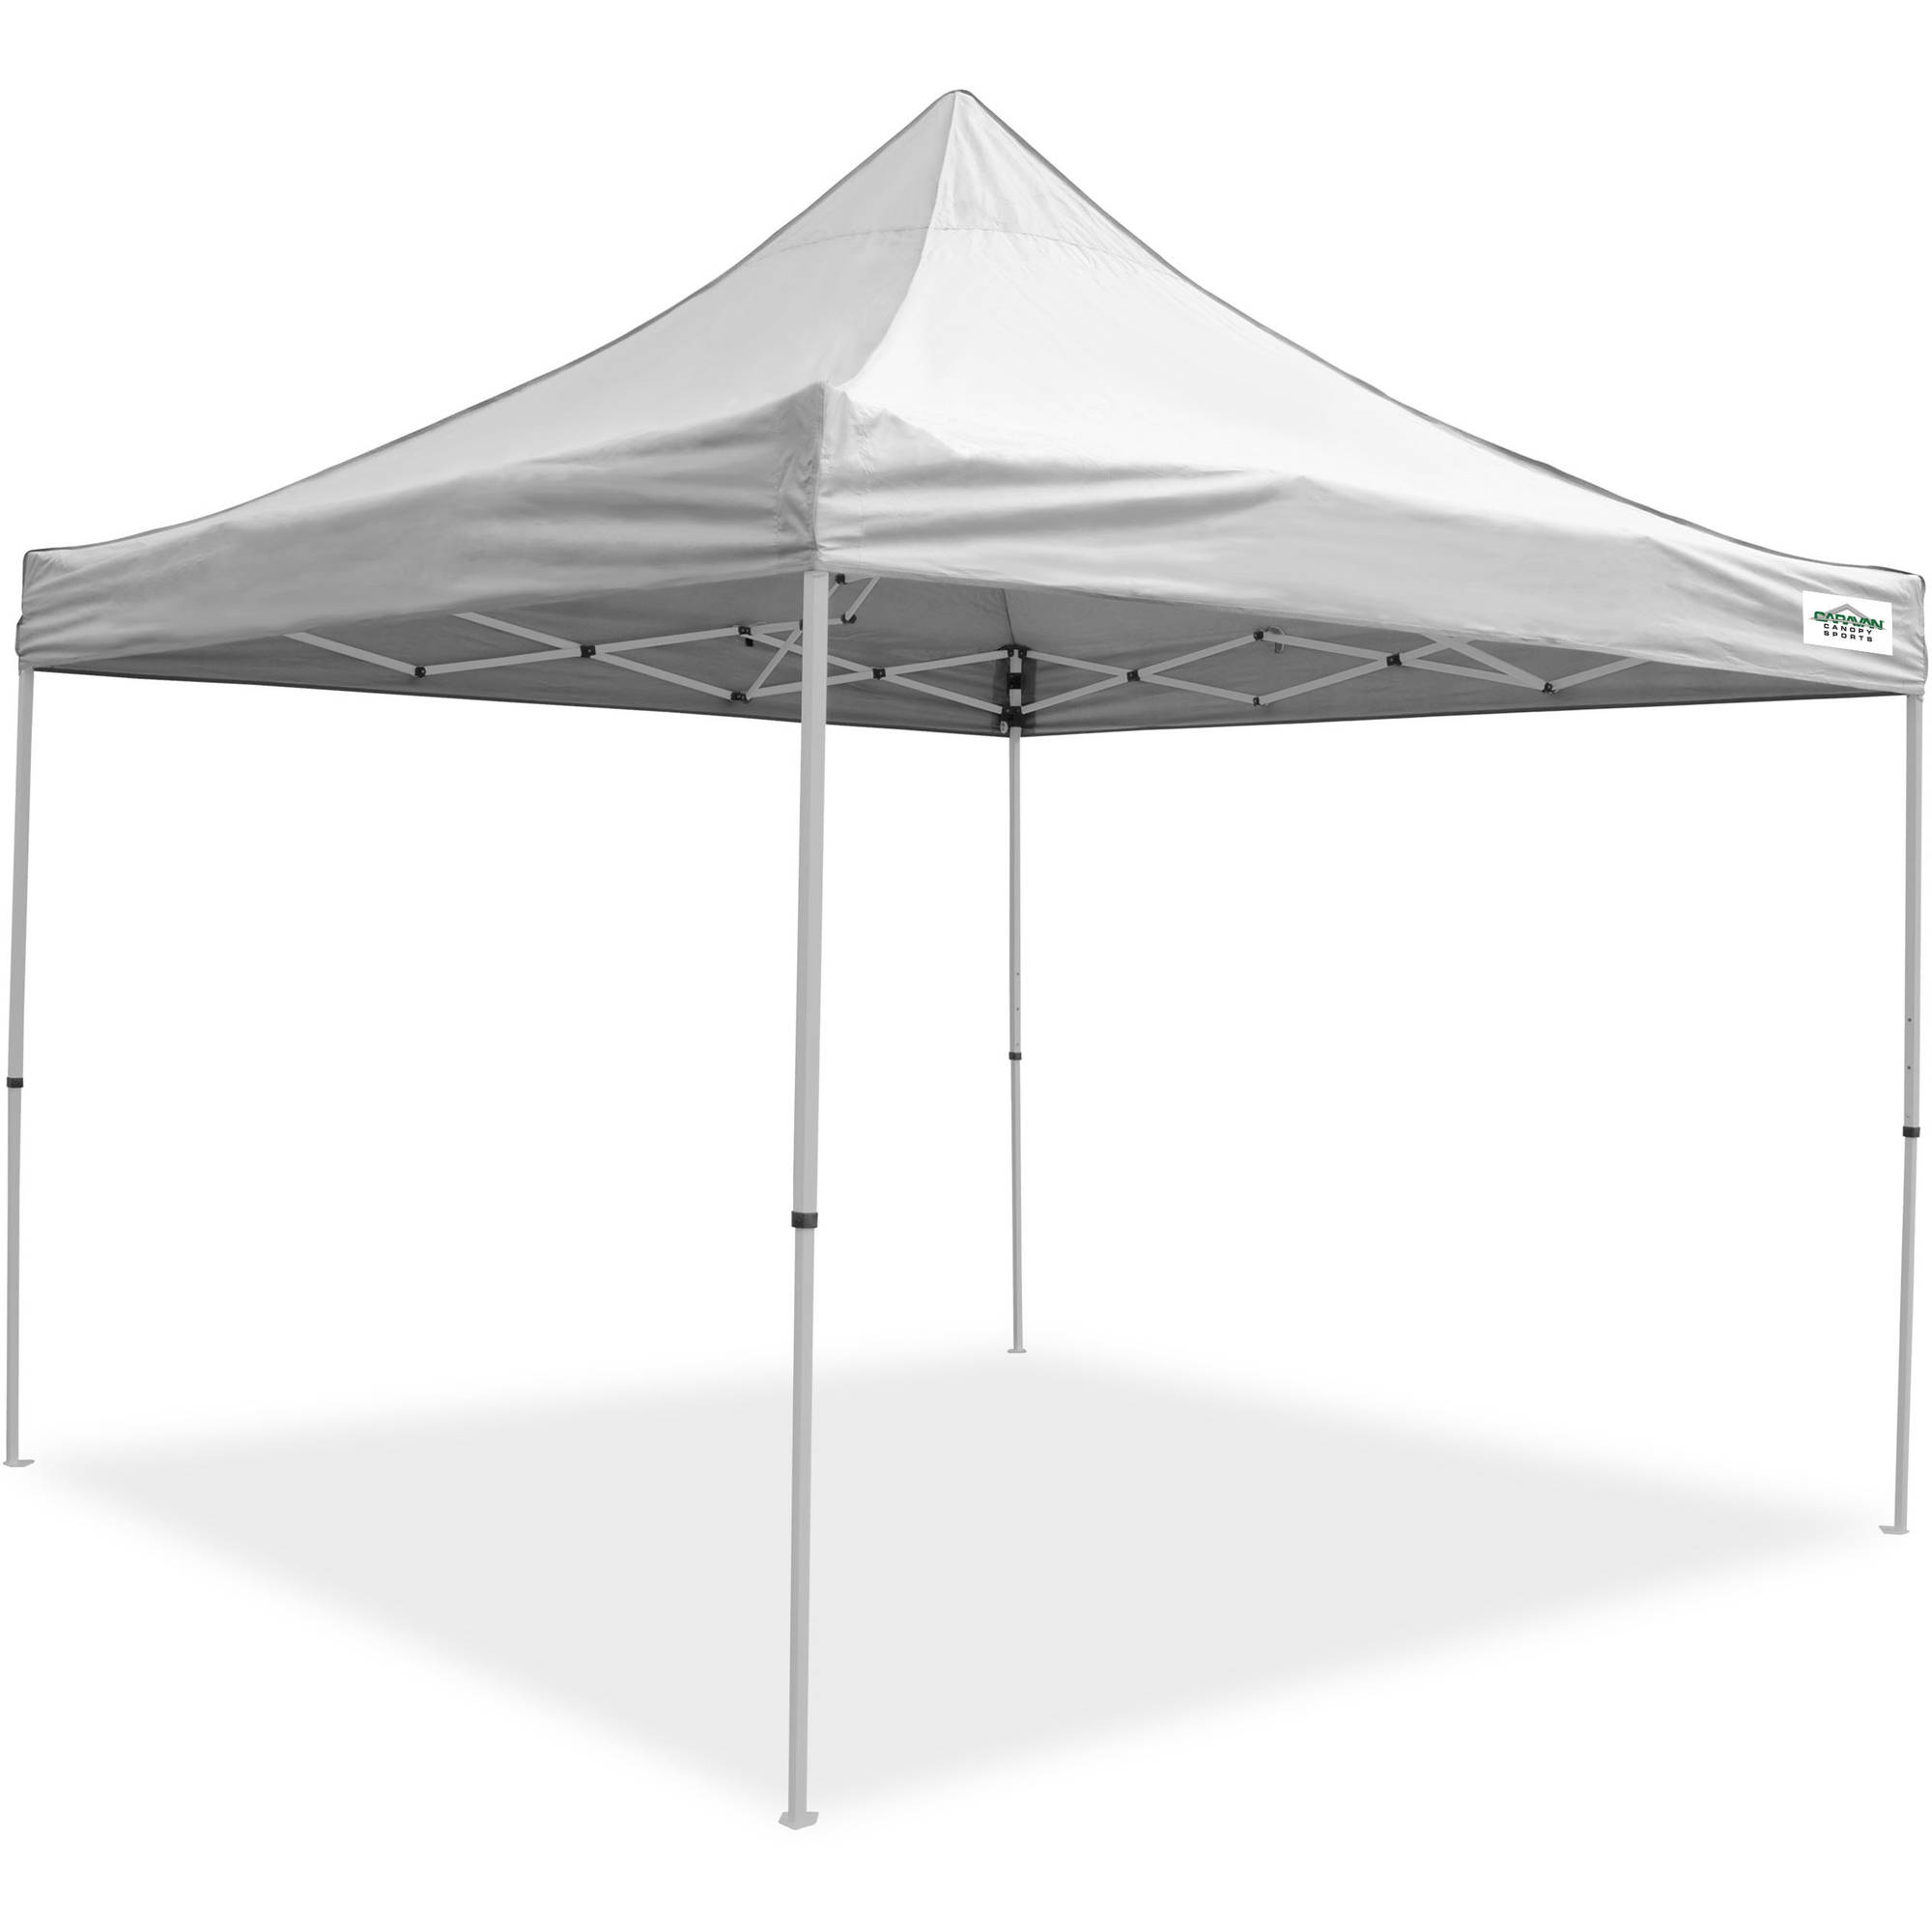 Caravan Canopy Sports 10' x 10'  M-Series 2 Pro Instant Canopy Kit, White (100